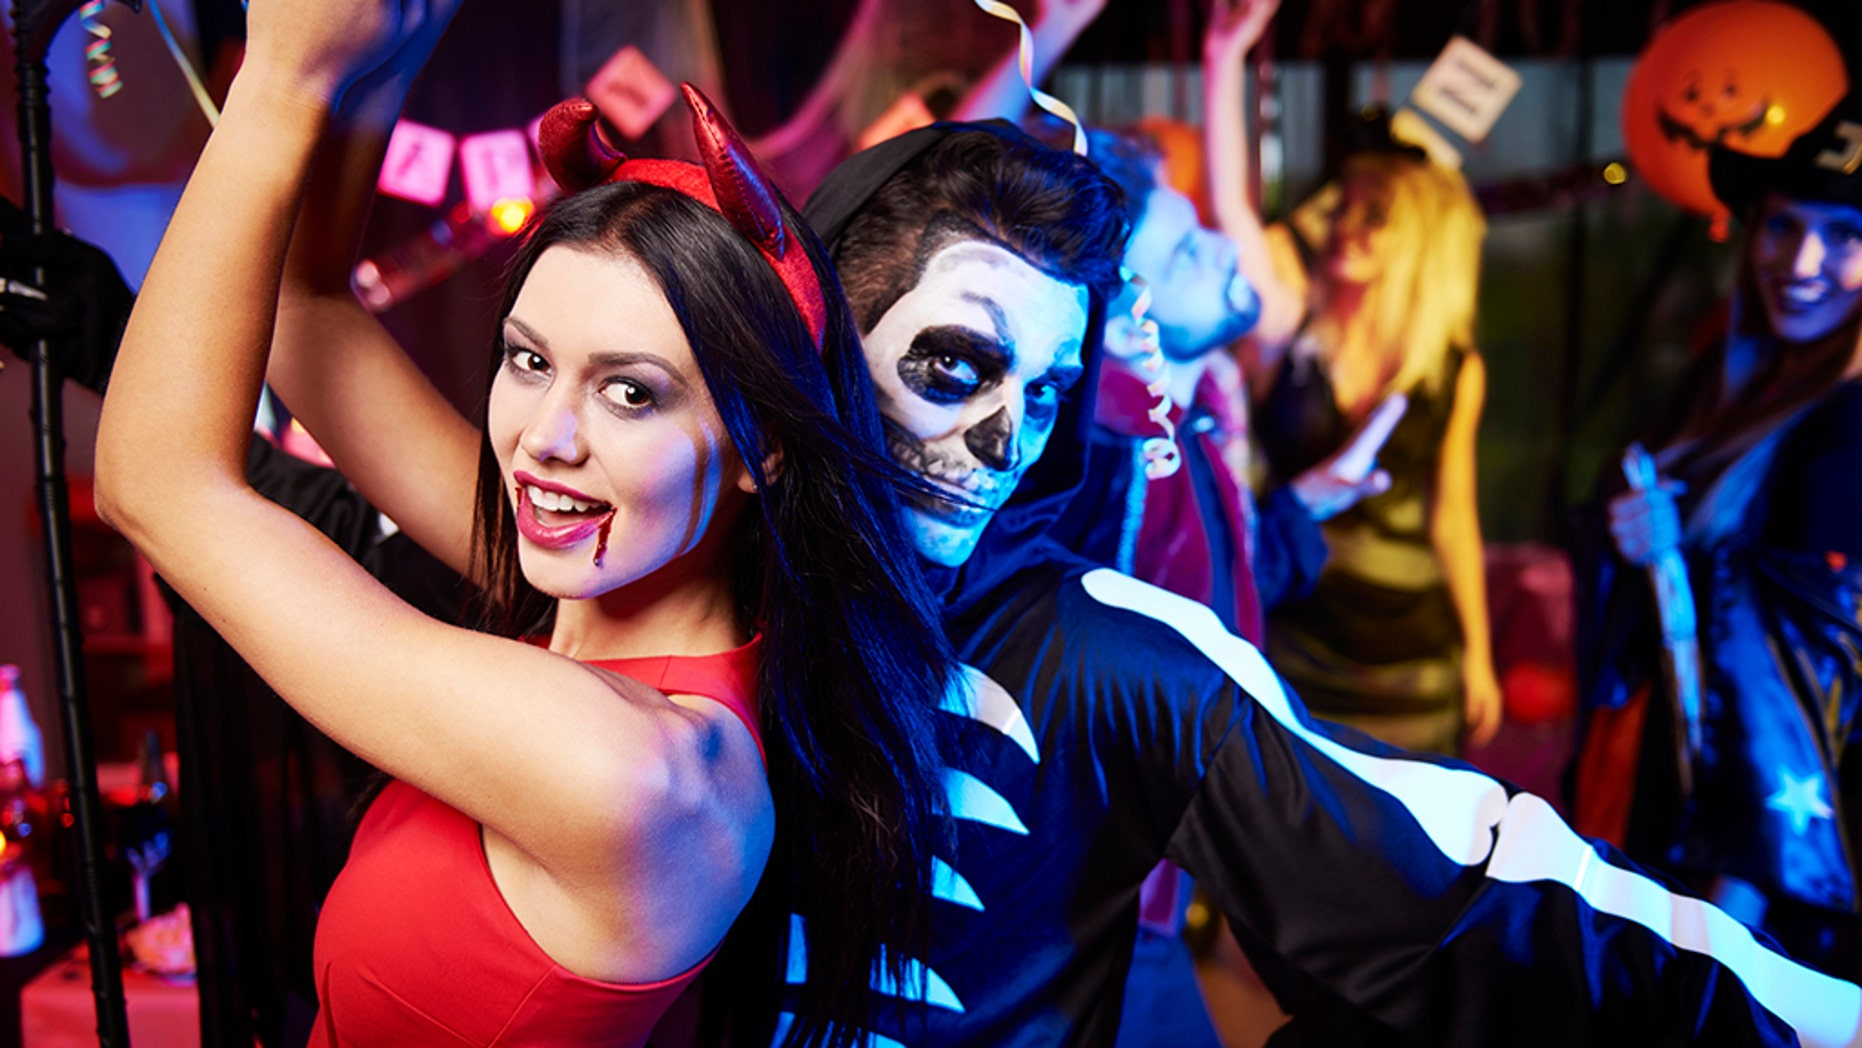 5 halloween costume ideas for couples | fox news